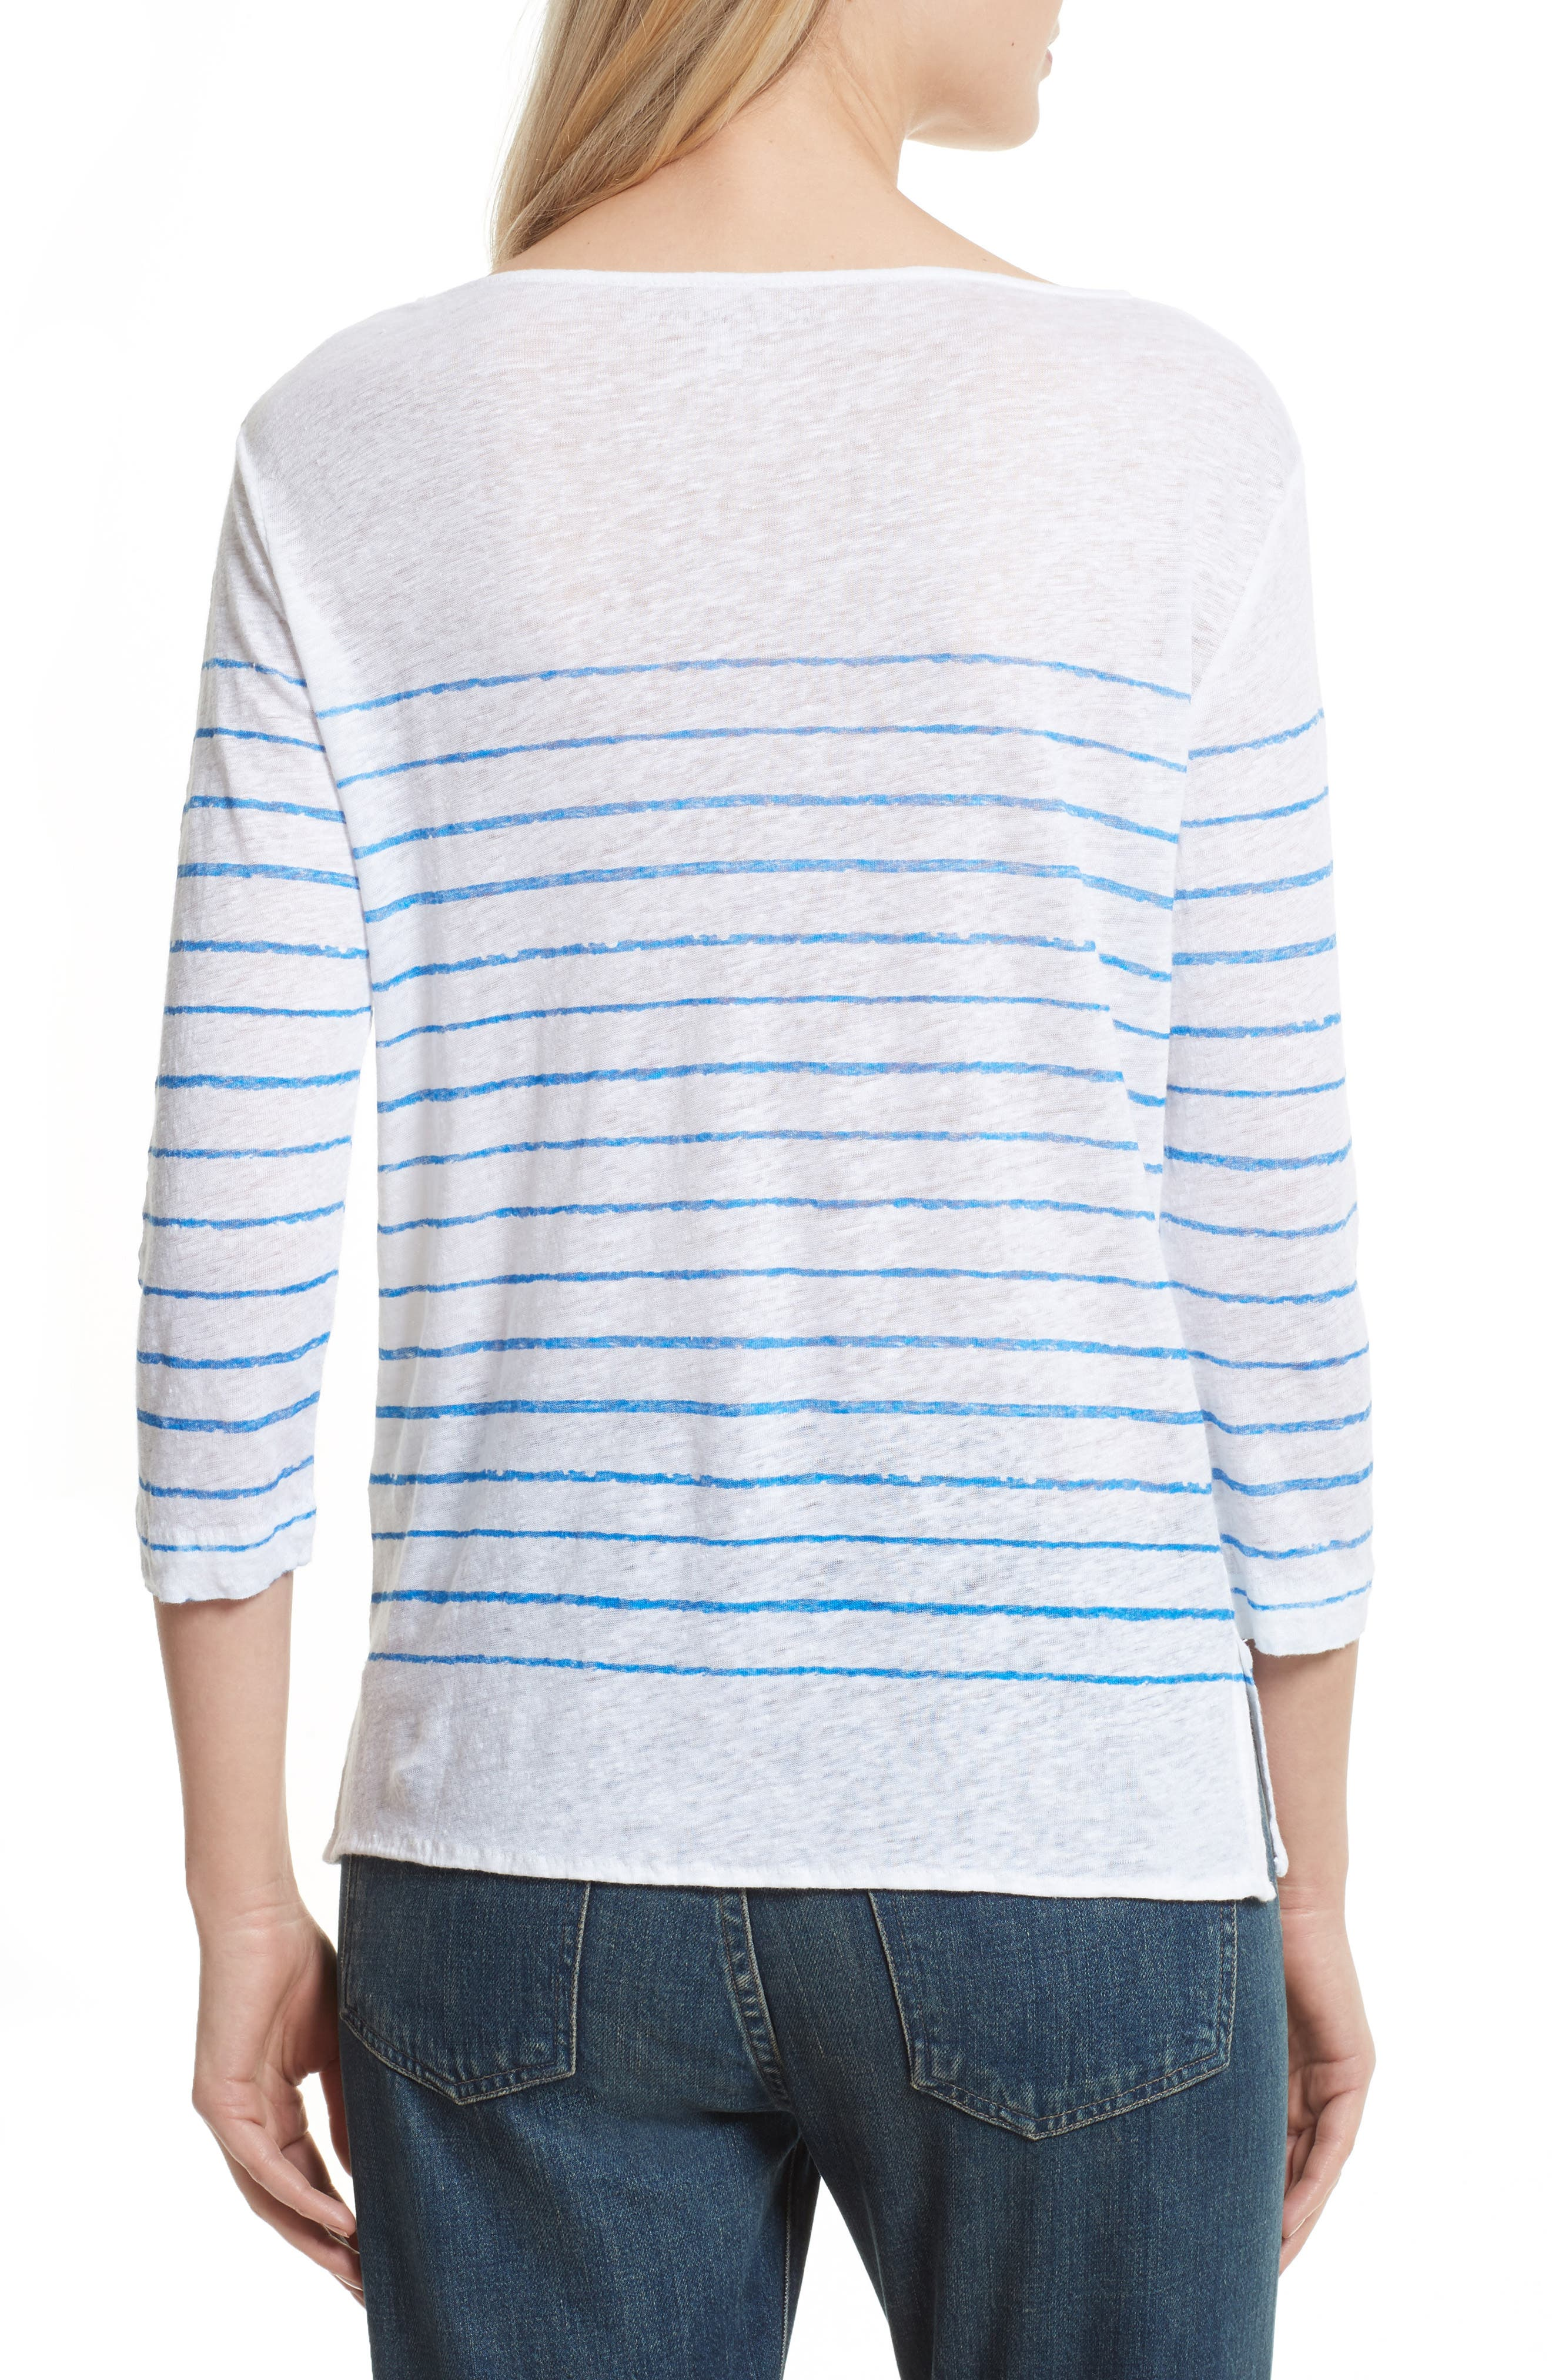 Alternate Image 2  - Majestic Filatures Vintage Stripe Linen Tee